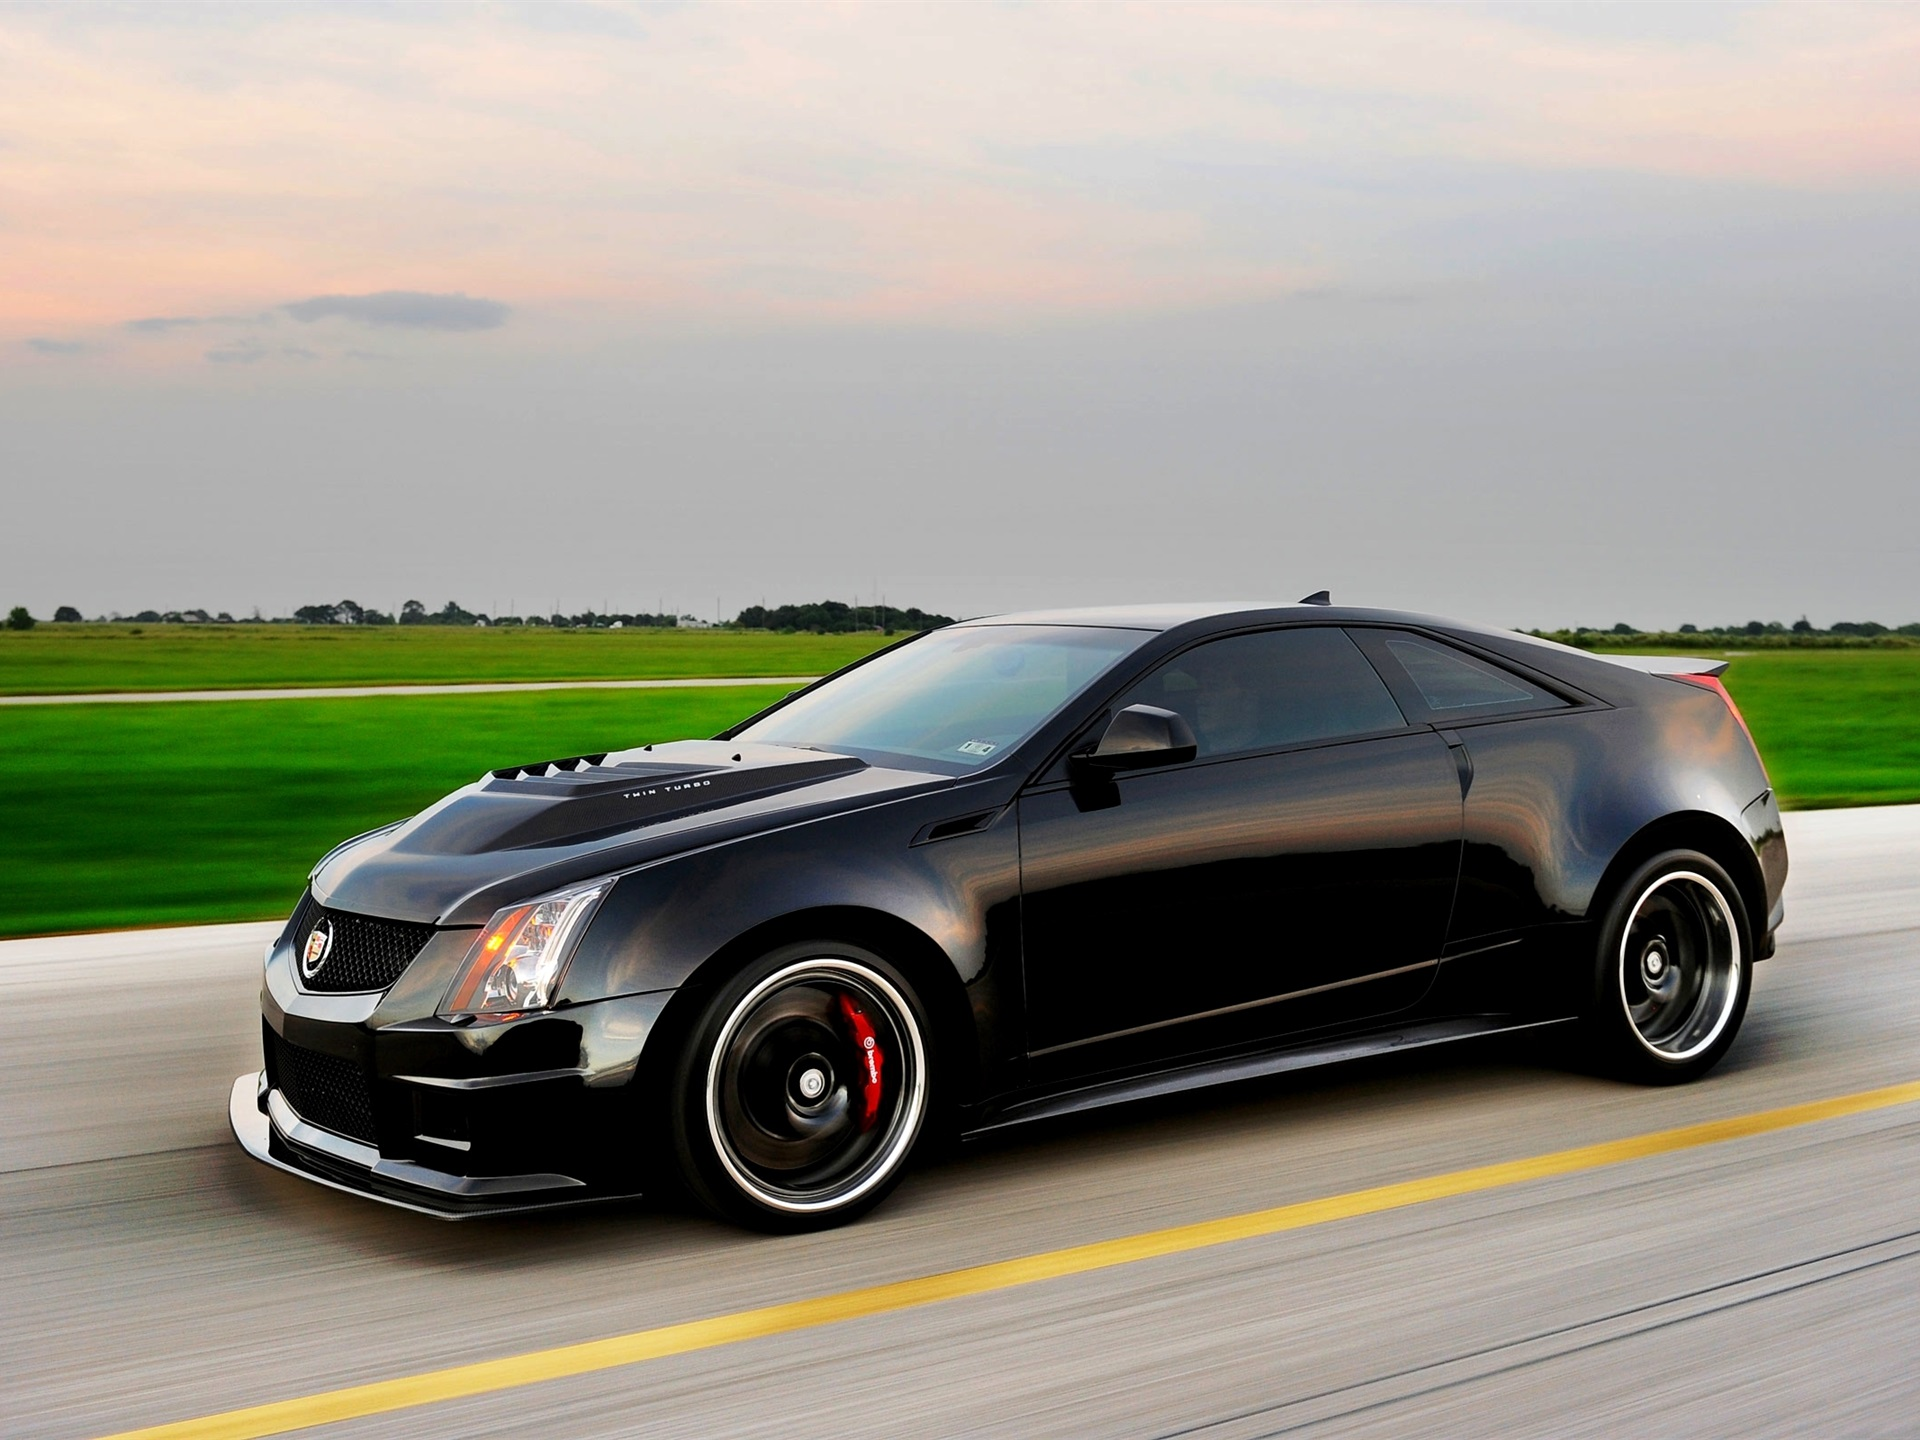 Wallpaper cadillac cts v black car side view 2560x1600 hd picture image - Car side view wallpaper ...